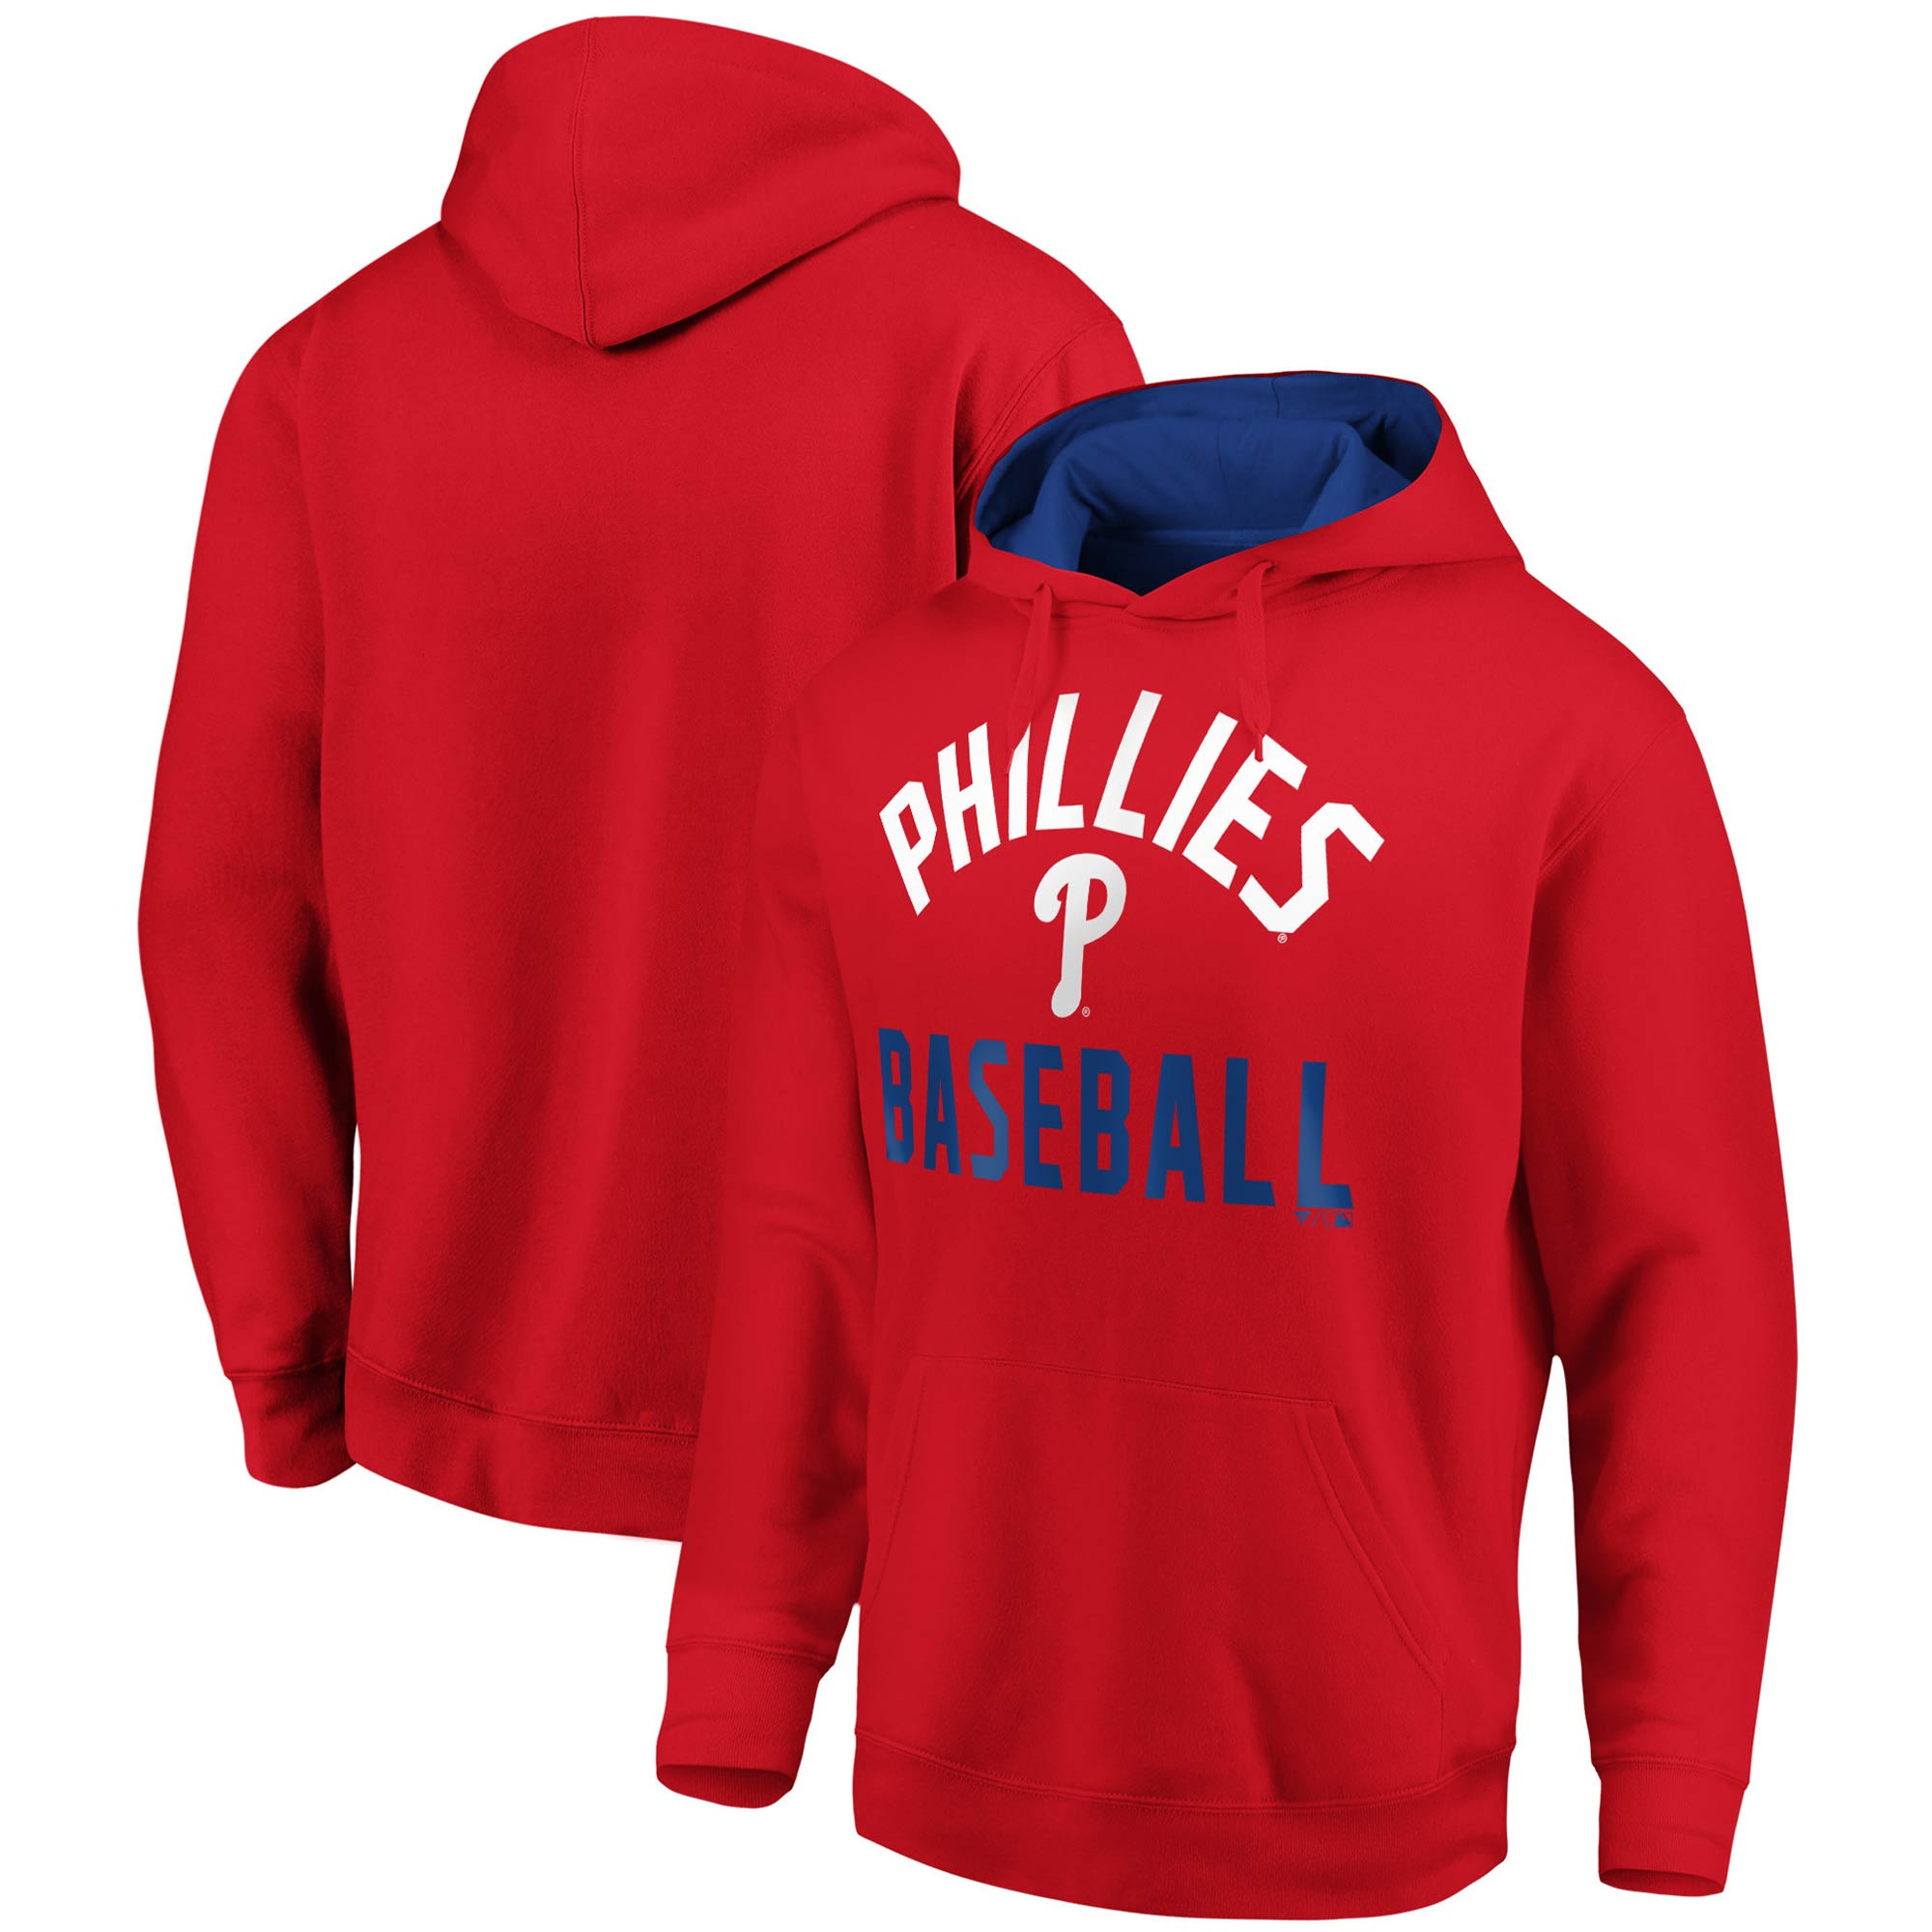 Philadelphia Phillies Fanatics Branded Big & Tall Team Pride Pullover Hoodie - Red